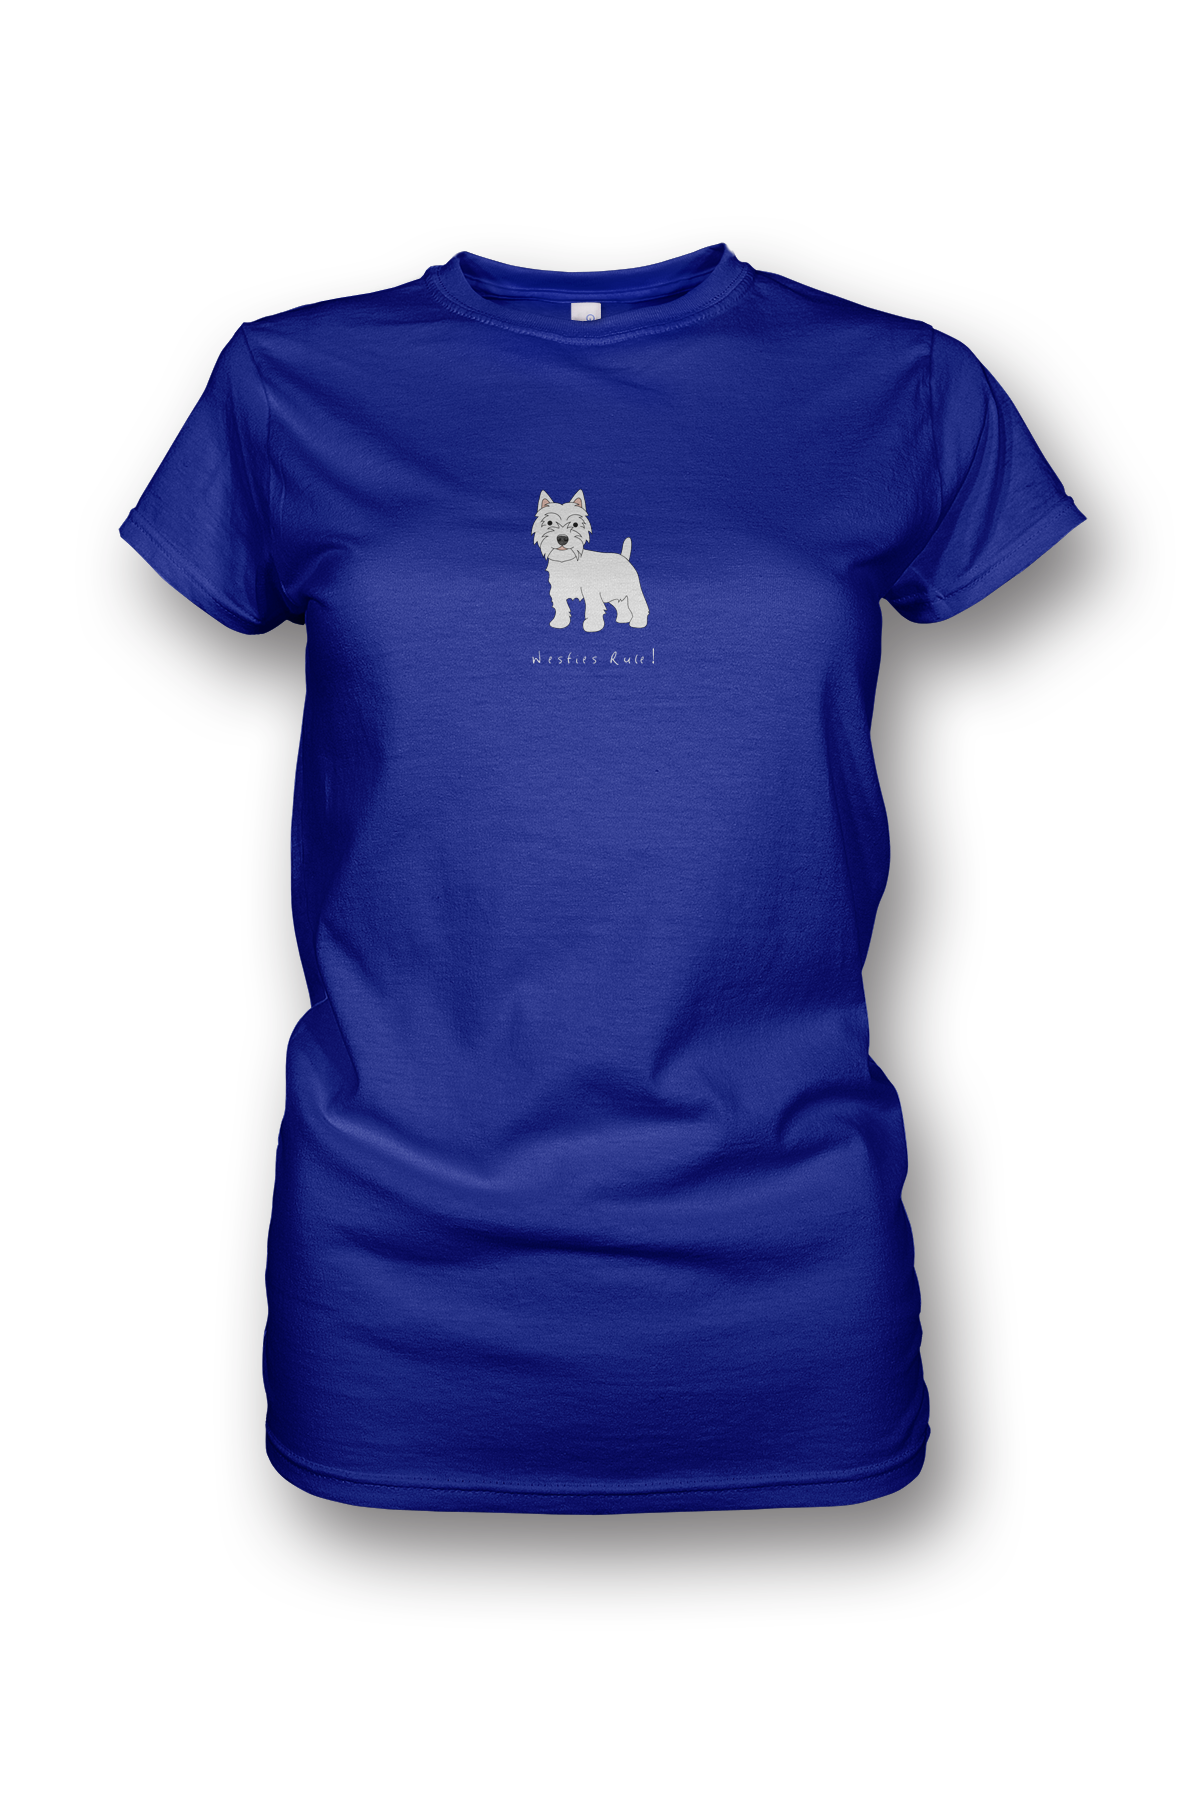 Ladies Crew Neck T-Shirt - Westies Rule! Neon Blue